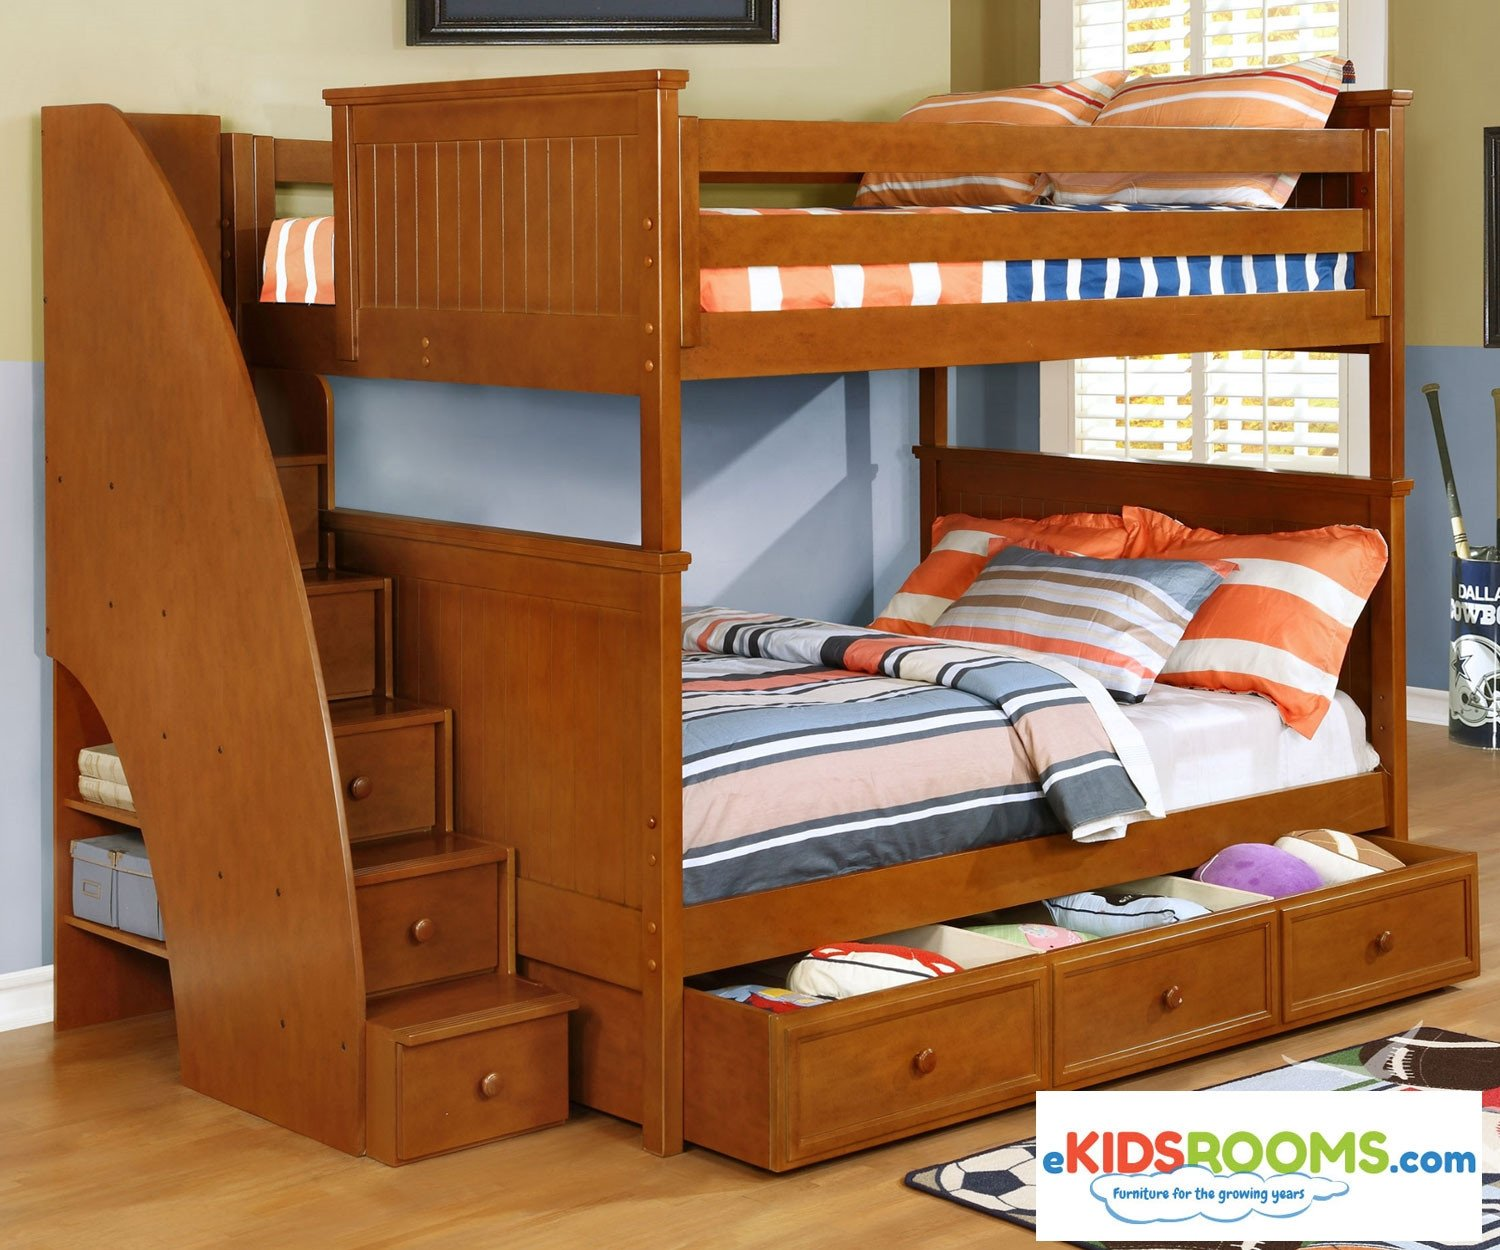 Kids Bunk Bed Bedroom Set Luxury Allen House Chatham Full Over Full Bunk Bed with Stairs Pecan